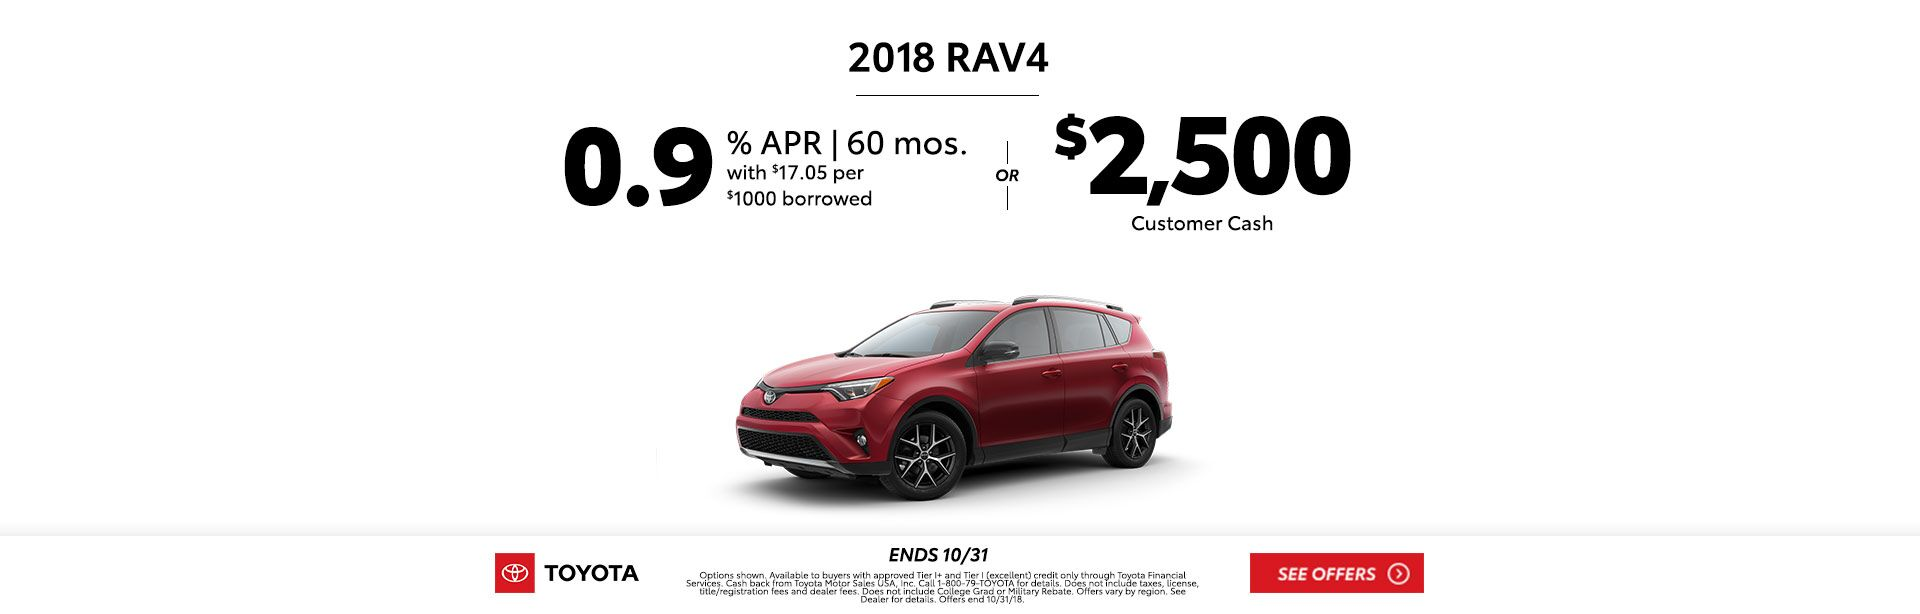 Rav4 Customer Cash Oct 2018